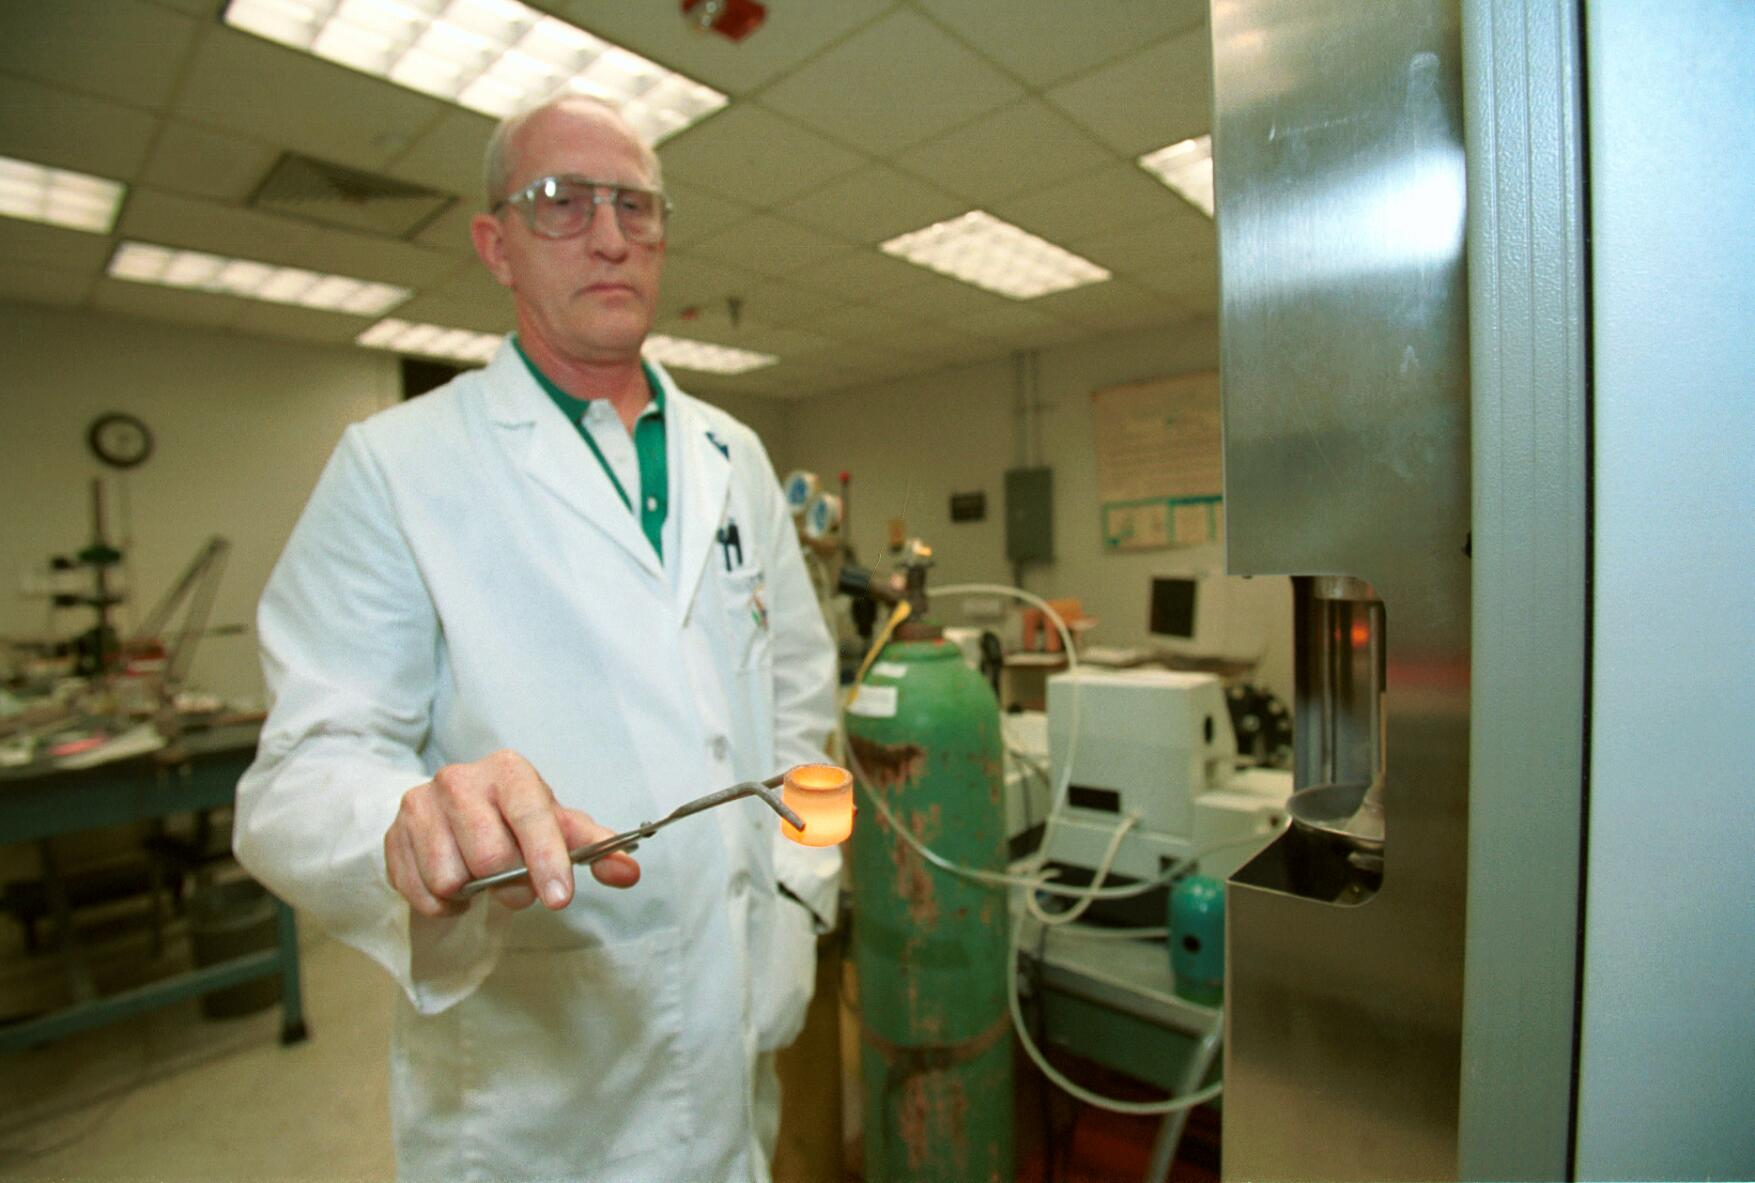 A CBP scientist runs extensive tests on a metal sample to determine its' origin.